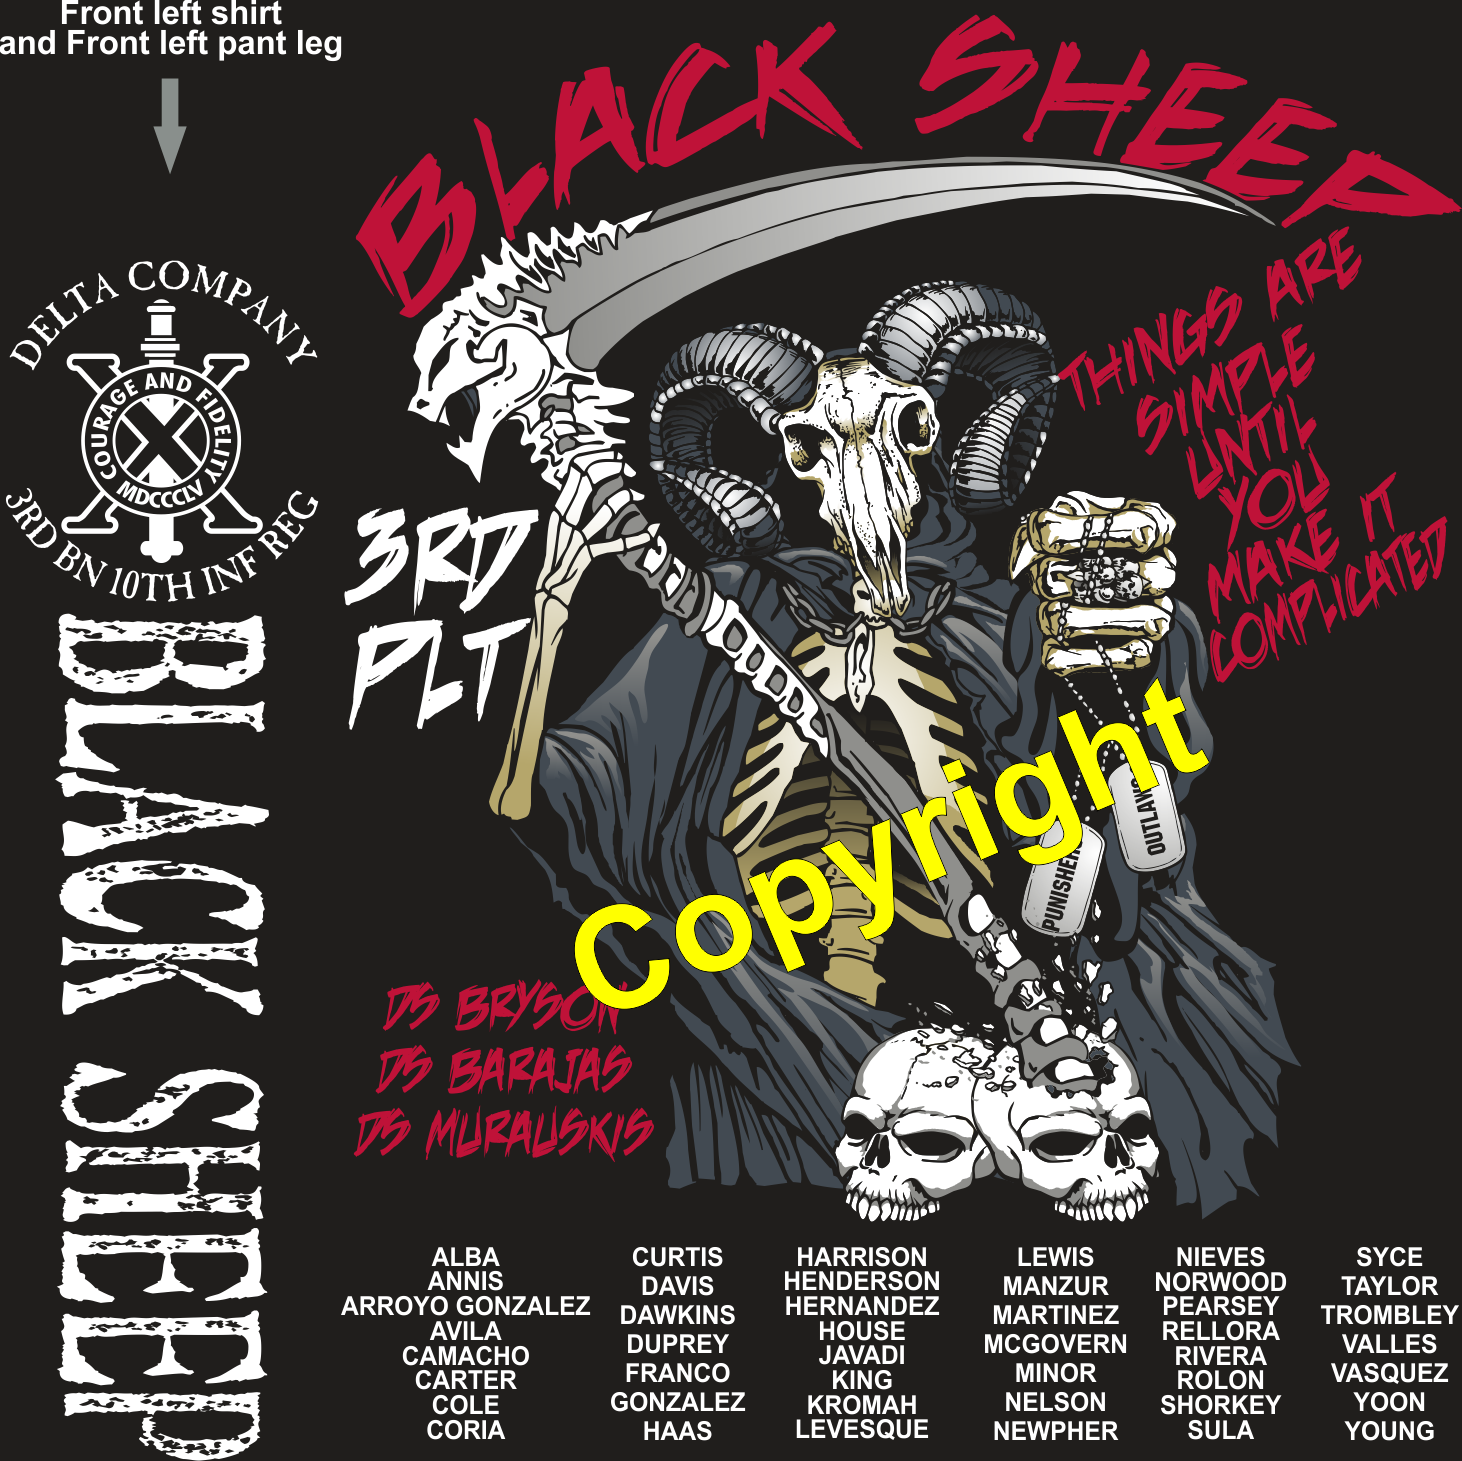 DELTA 310 BLACK SHEEP GRADUATING DAY 5-30-2019 digital